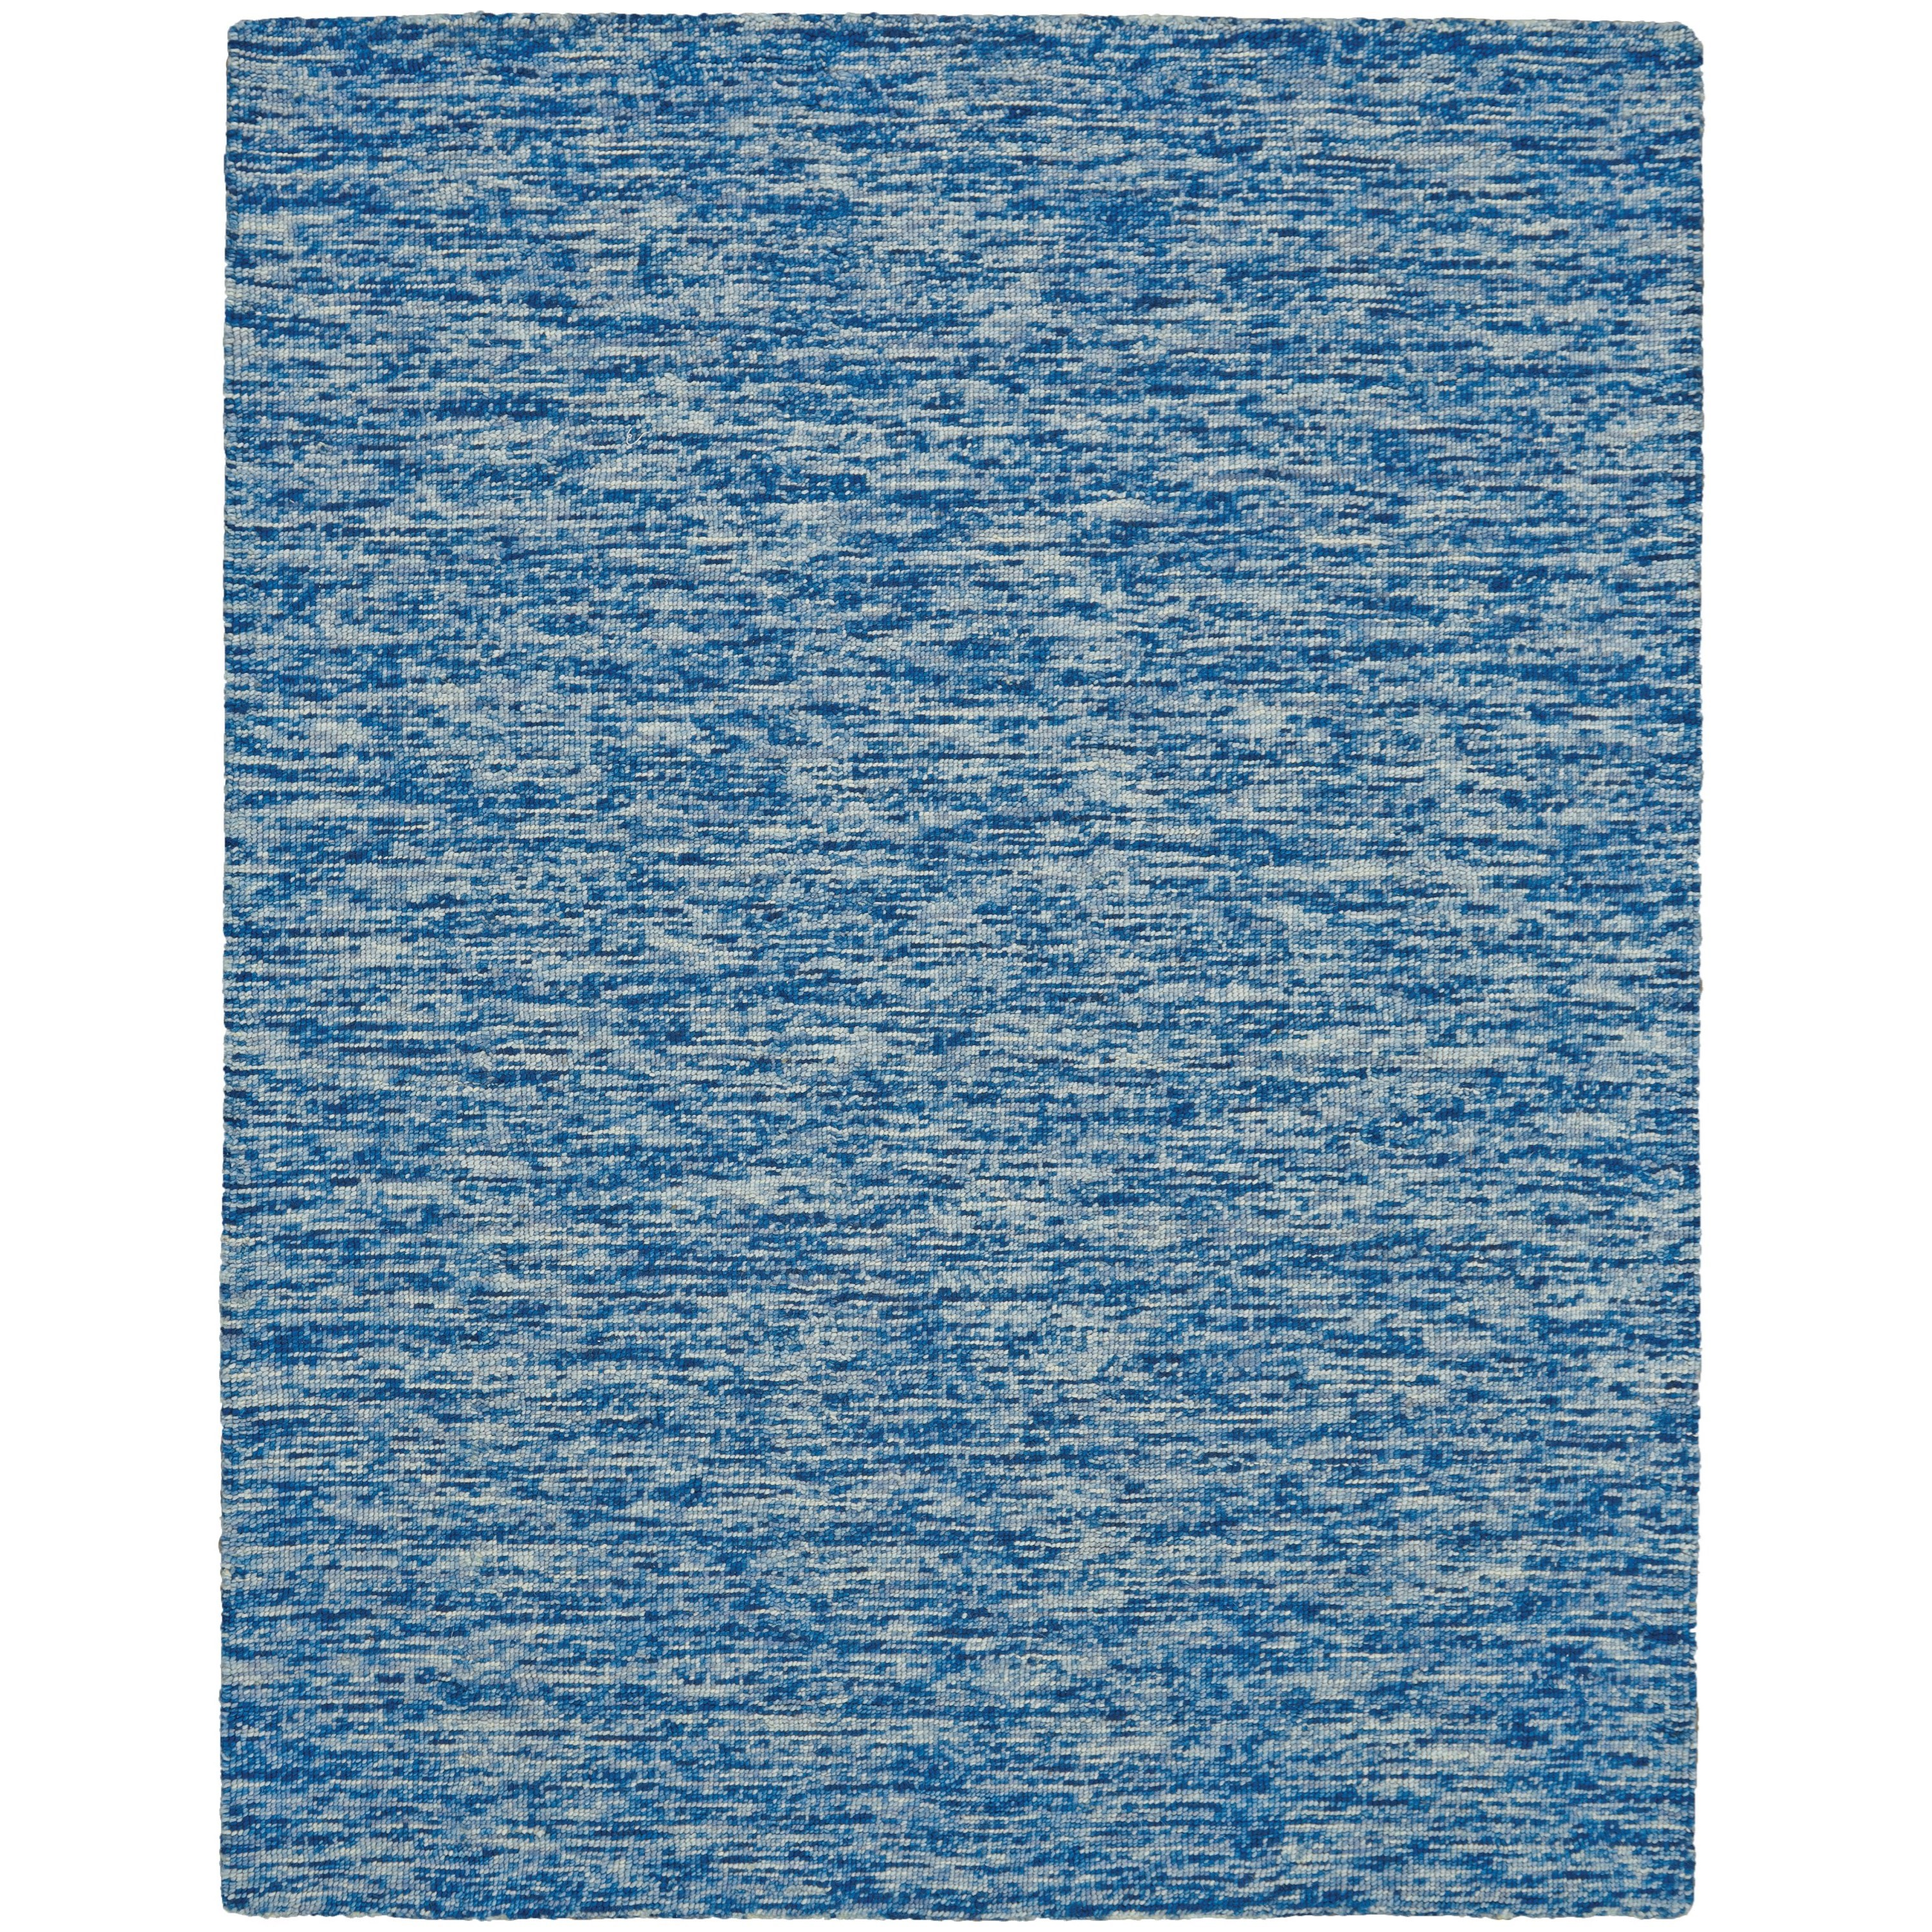 Cora Azure 8' X 11' Area Rug by Feizy Rugs at Sprintz Furniture